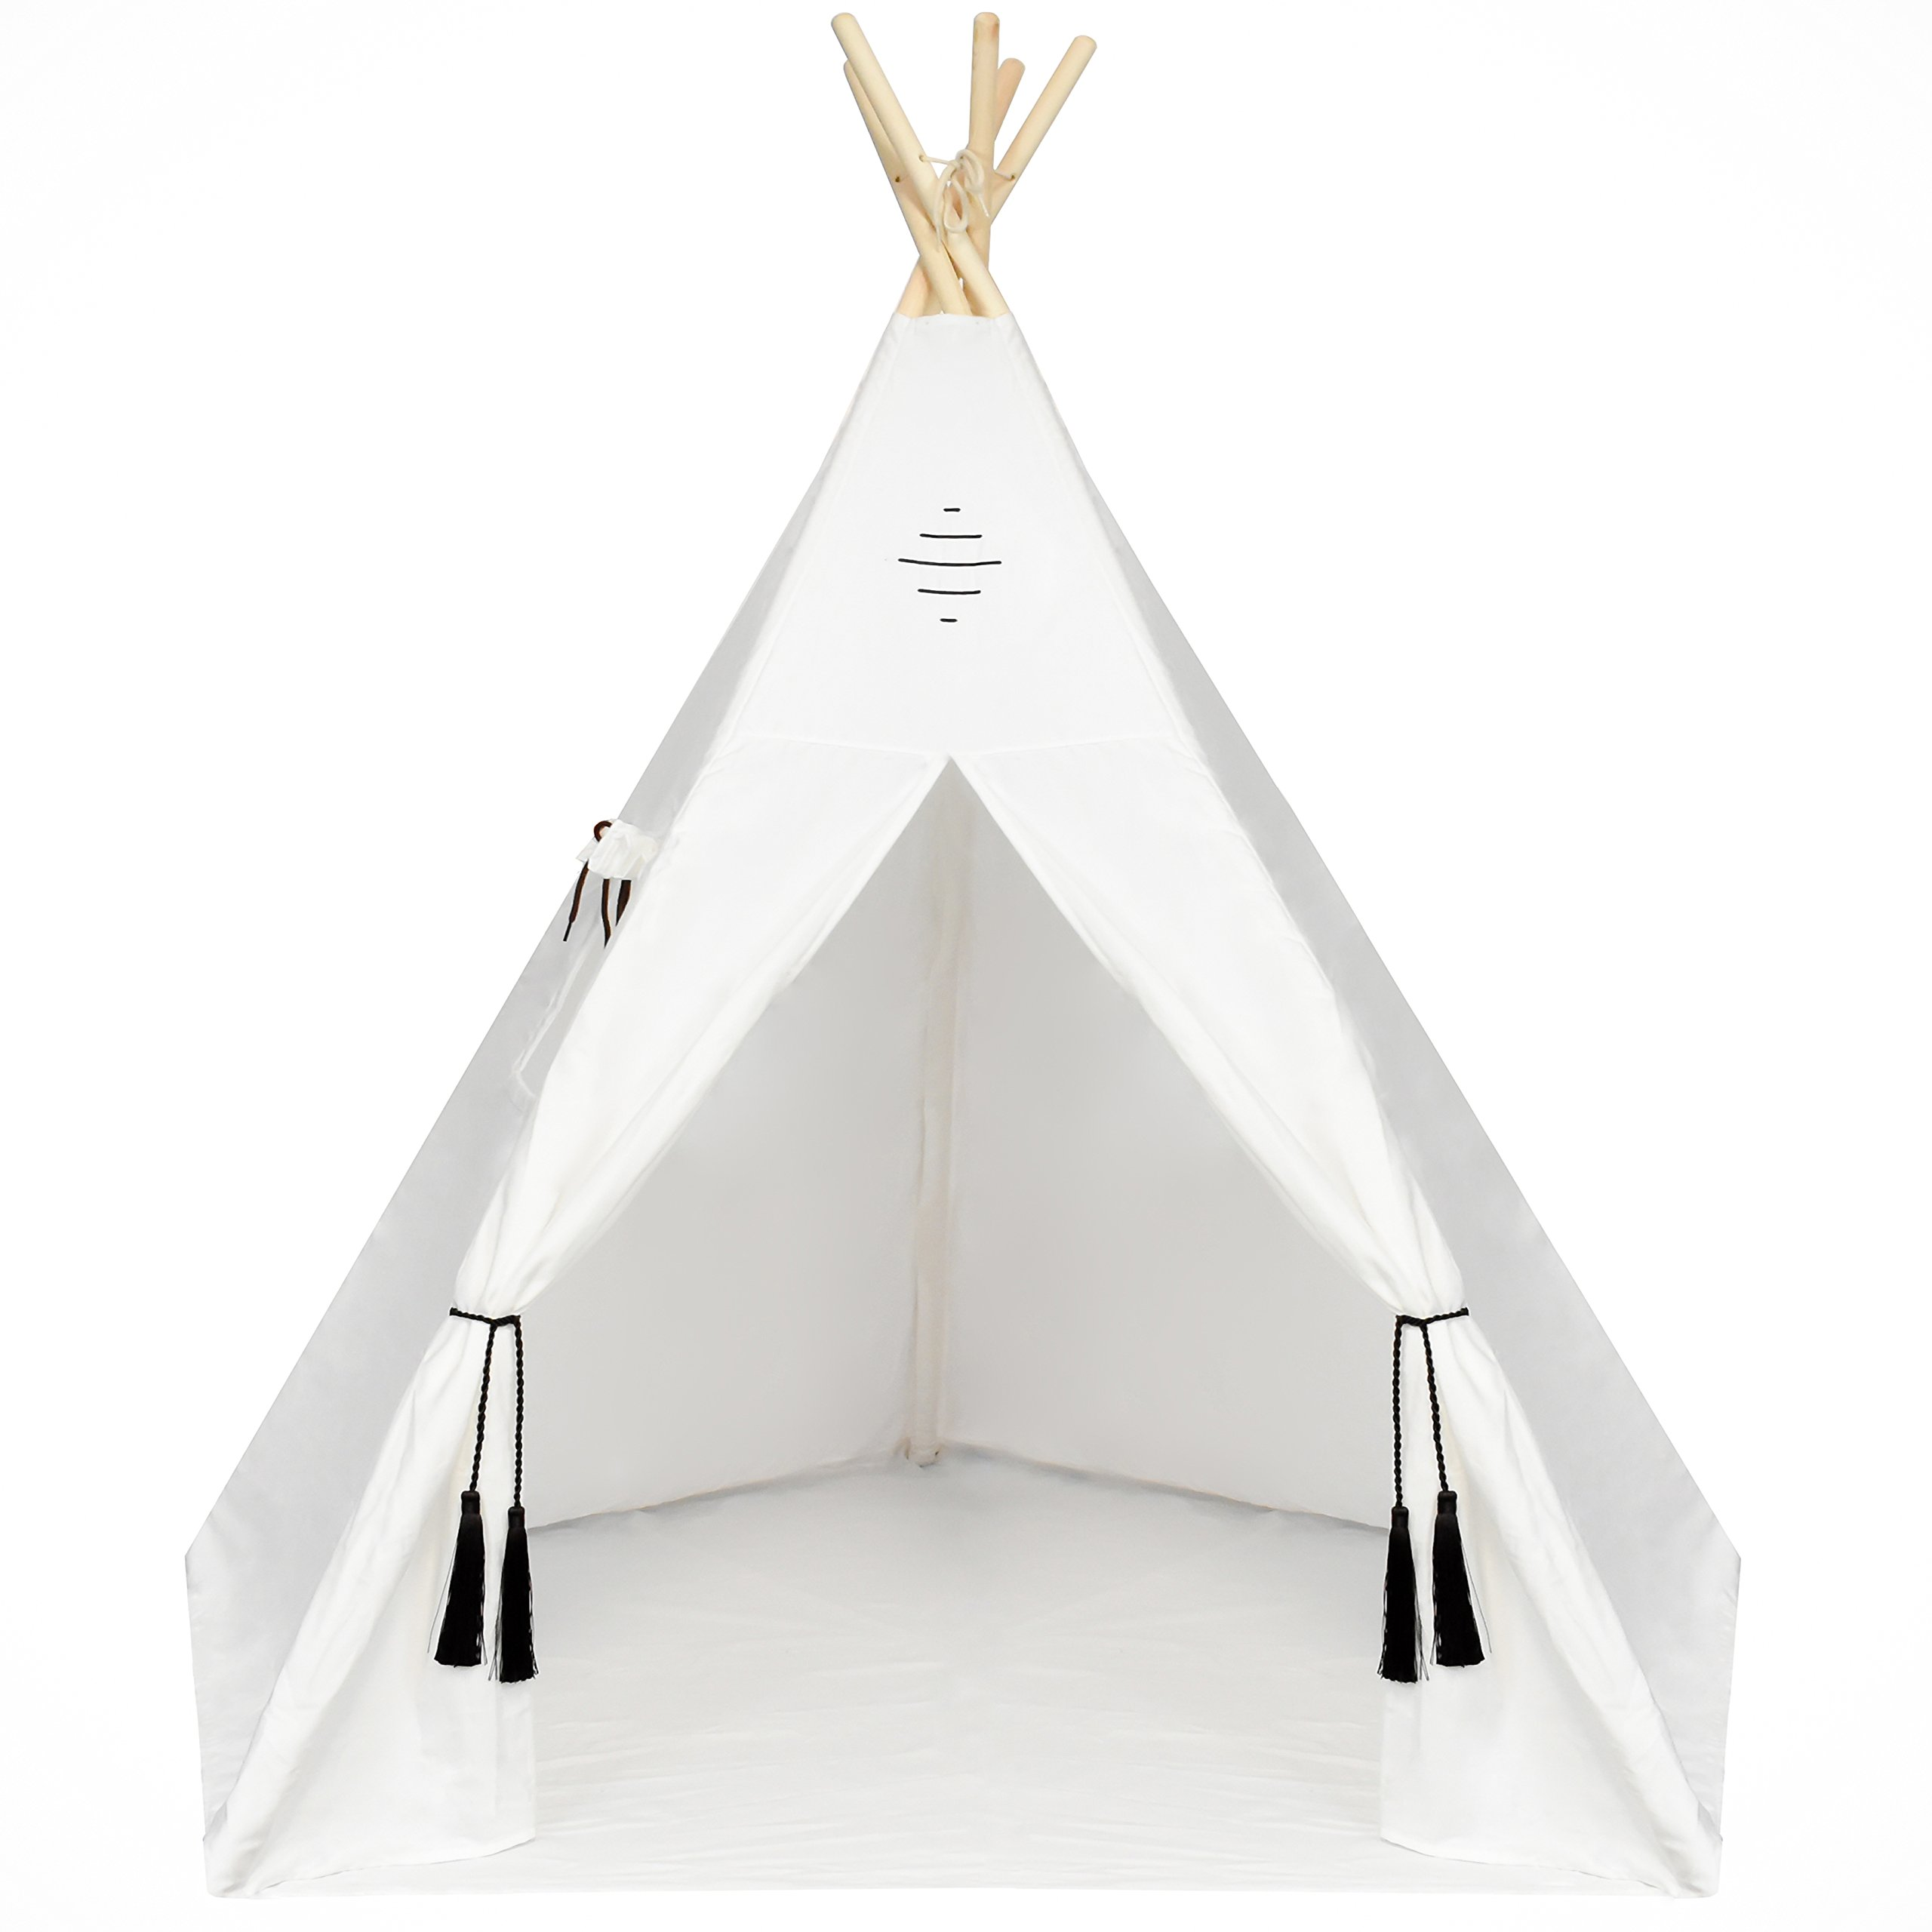 Kids Teepee Tent - Large 6 Feet Tipi with a Floor, Five Poles, Window & Carrying Bag. Foldable Children's Playhouse for Indoor or Outdoor Play. Popular Boys & Girls Gift For Thanksgiving & Christmas.